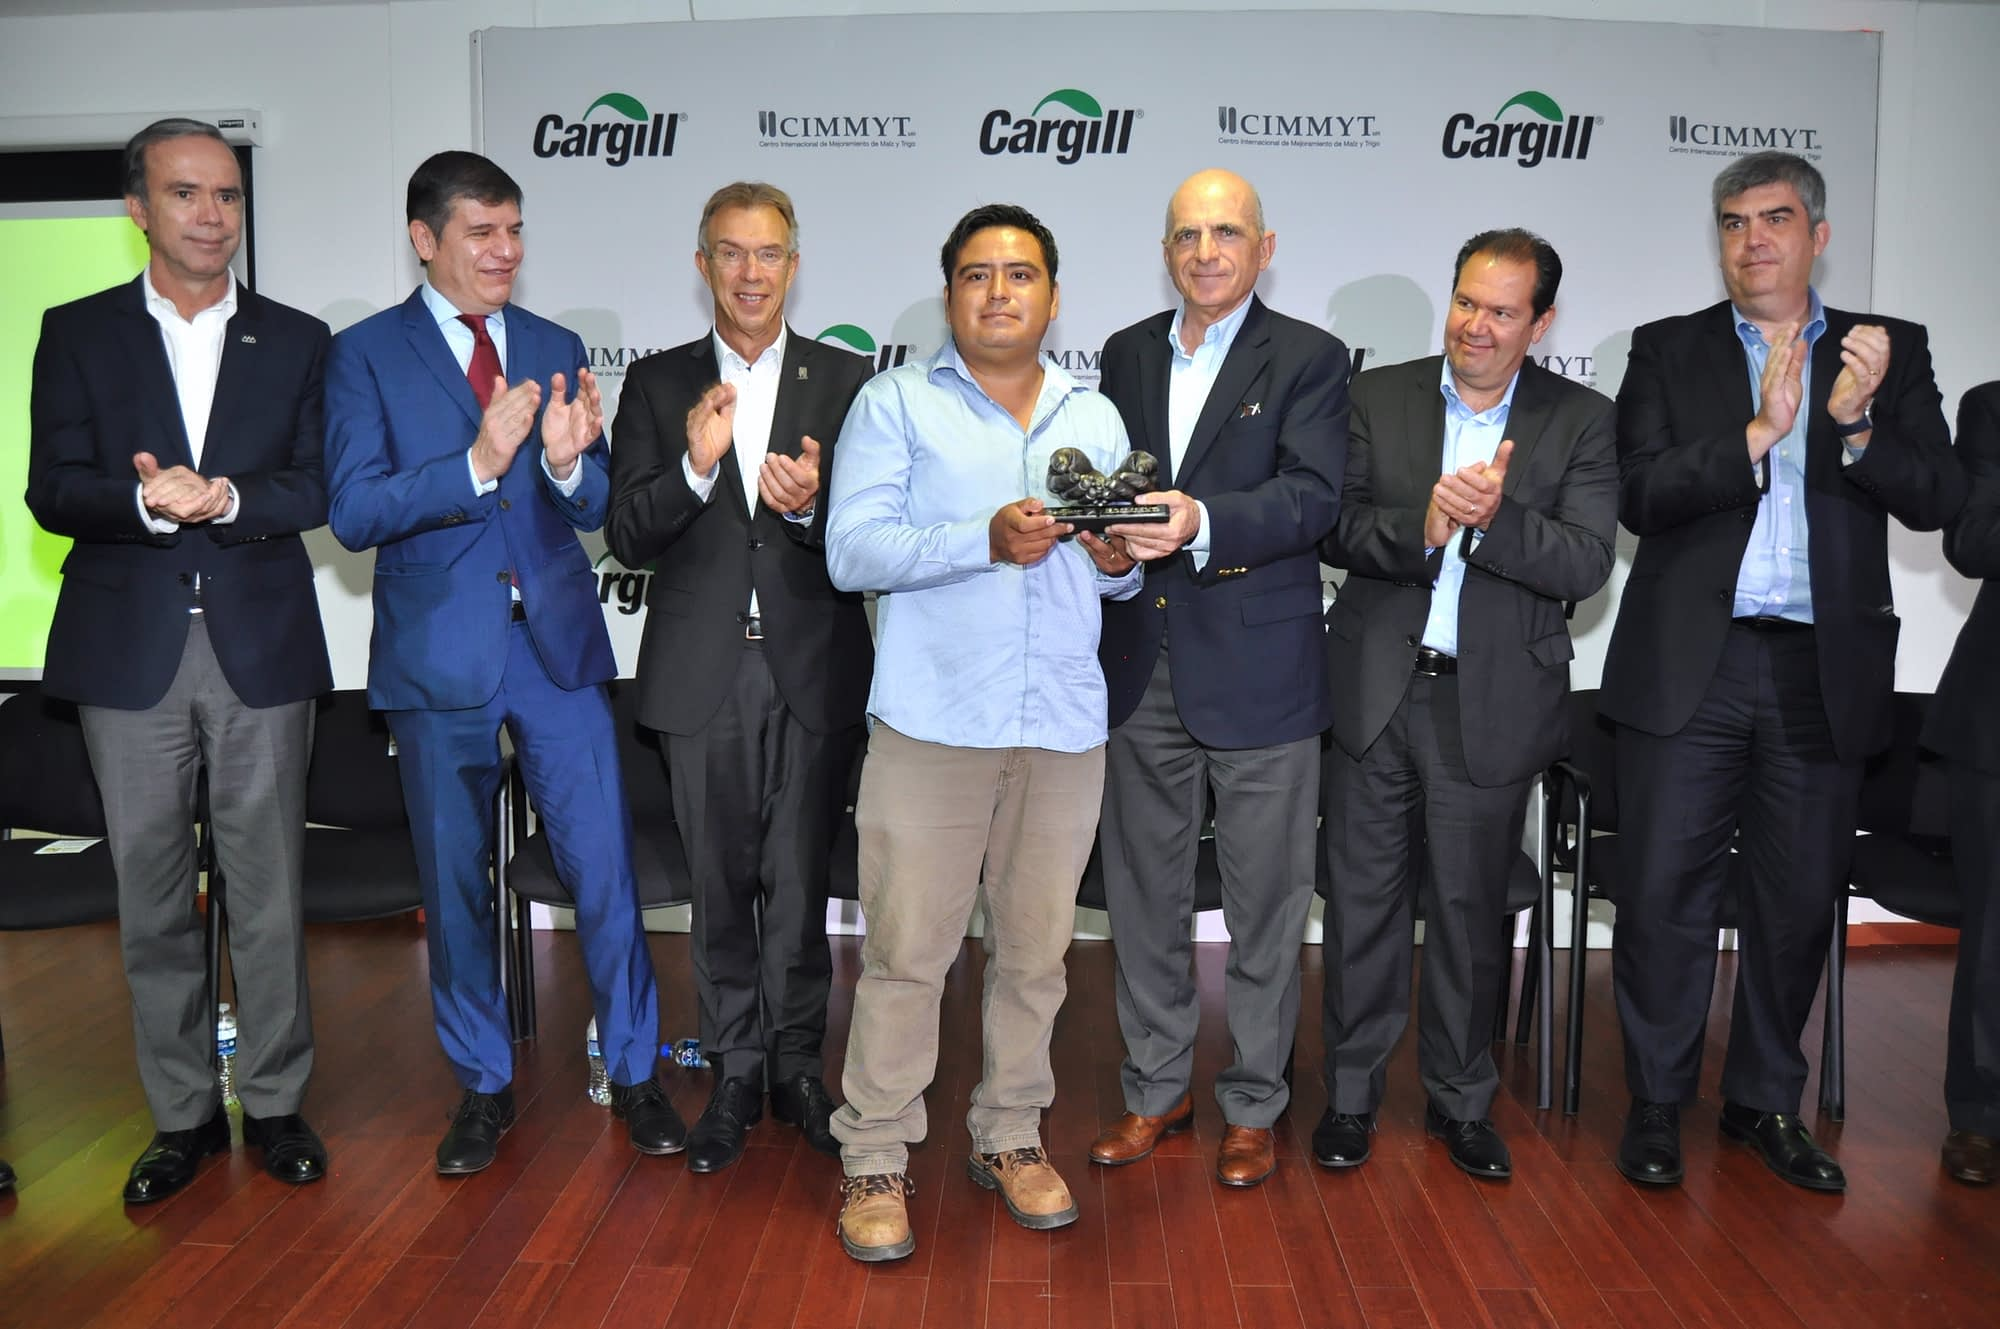 Carlos Barragán (center) receives the Cargill-CIMMYT Award, in the Farmers category. Behind him are representatives from the organizations in the jury (from left to right): Bosco de la Vega, President of Mexico's National Agriculture Council; David Hernández, Global Chief Procurement Officer of Grupo Bimbo; Martin Kropff, Director General of CIMMYT; Jorge Zertuche, Mexico's Undersecretary of Agriculture; Marcelo Martins, President of Cargill Mexico; and José Sáenz, Chief of Staff to the Secretary of Economy. (Photo: CIMMYT)